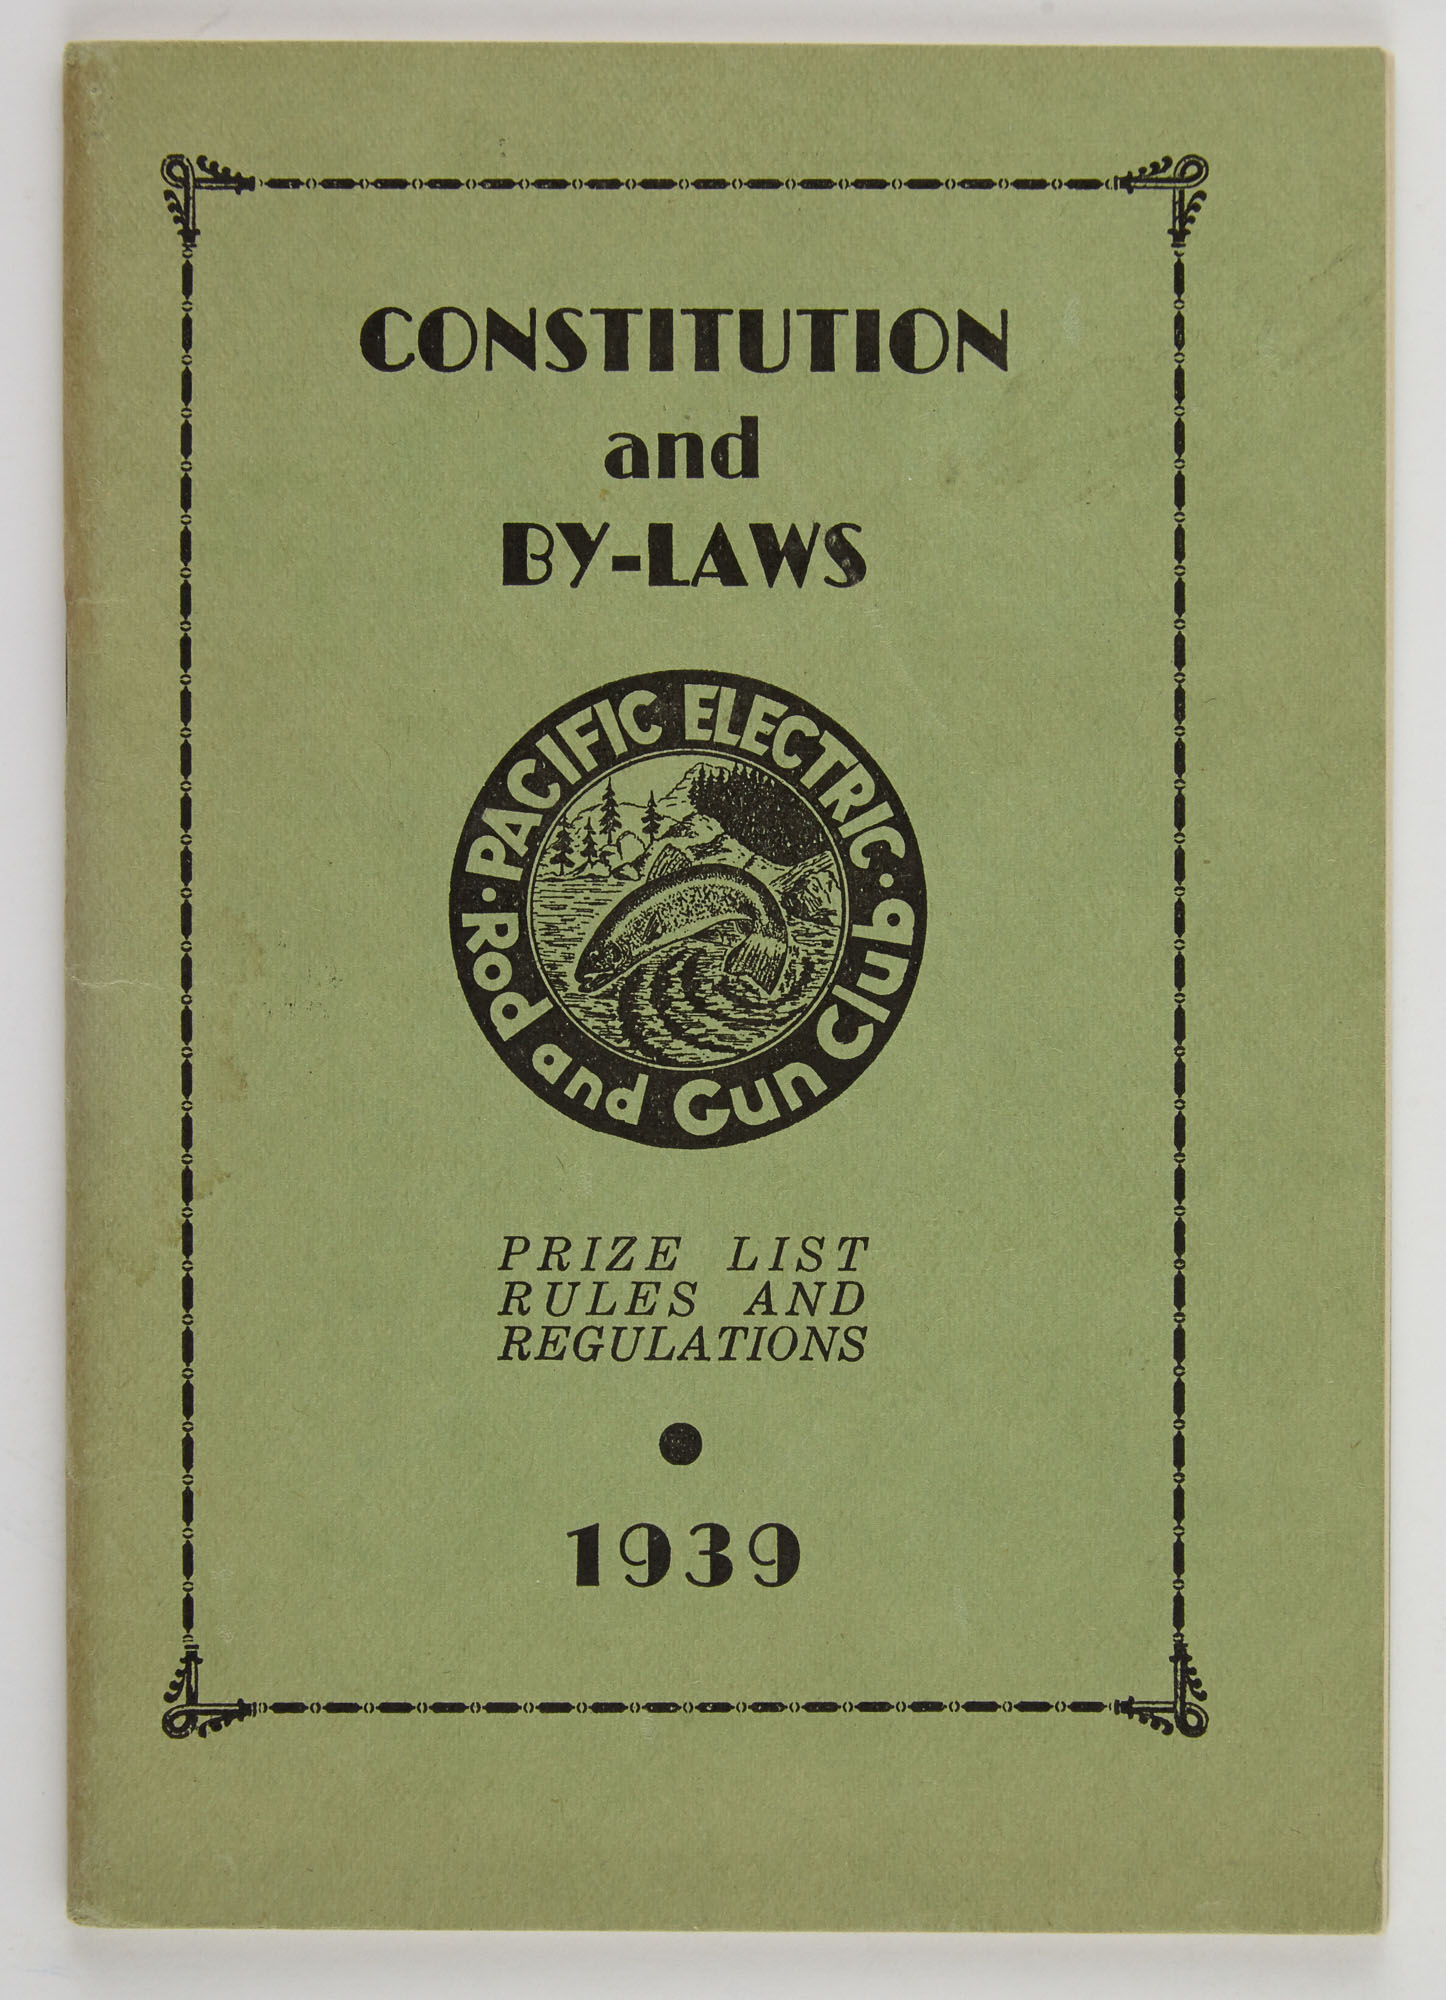 Lot image - [ANGLING CLUB]  Constitution and By-Laws. Pacific Electric Rod and Gun Club. Prize List, Rules and Regulations. 1939.